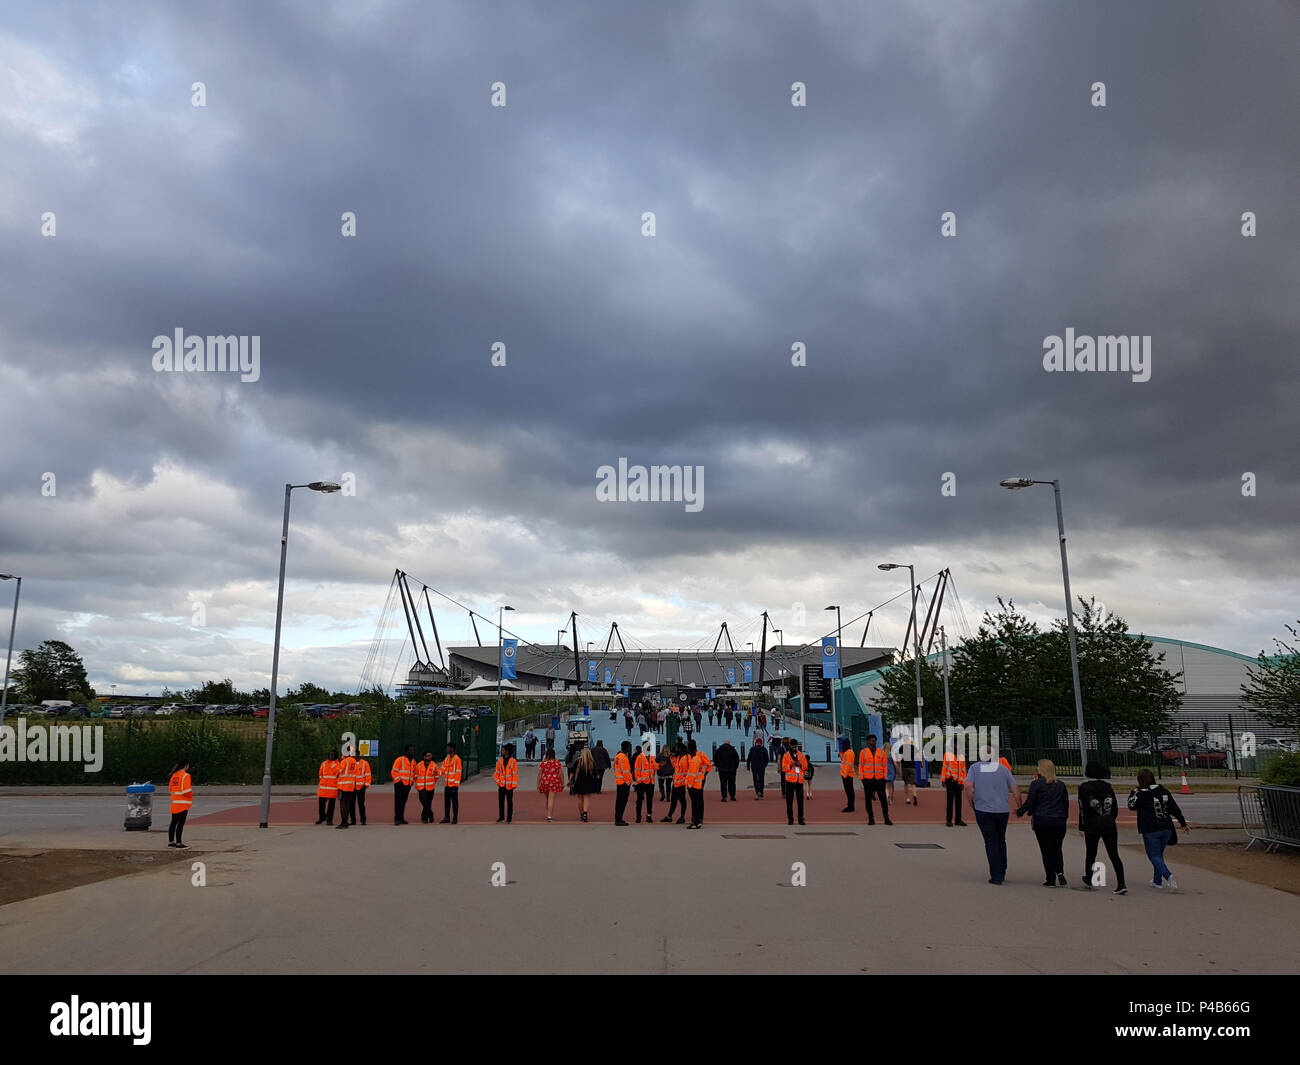 Manchester, England, UK, June 19, 2018: Guests arriving for the Foo Fighters Concert in the Etihad Stadium, crossing through security. - Stock Image